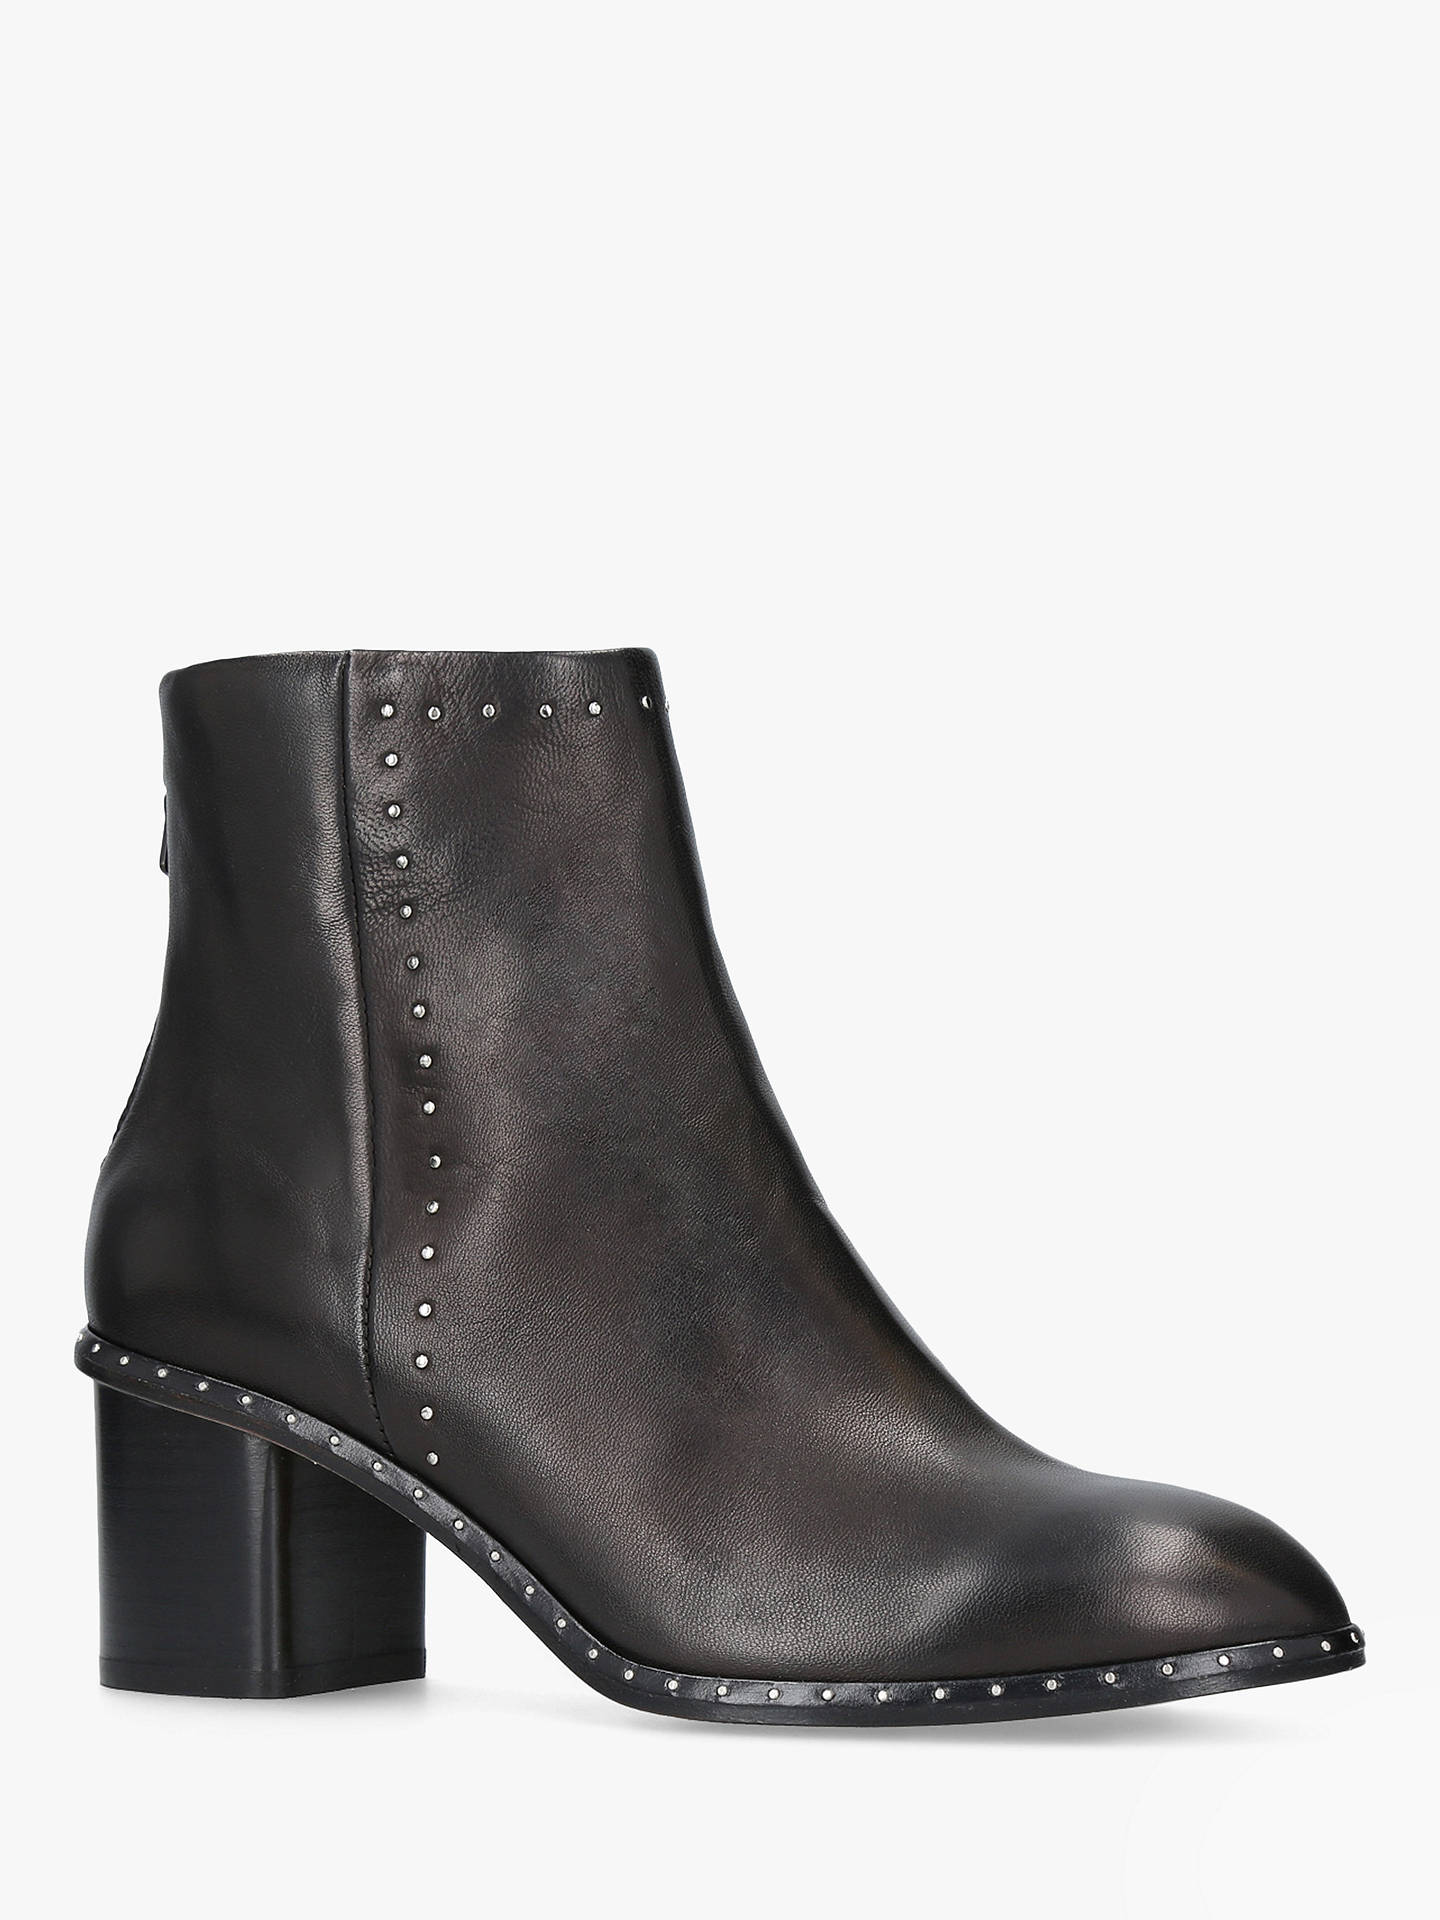 fe5606a5 rag & bone Willow Leather Studded Ankle Boots, Black at John ...